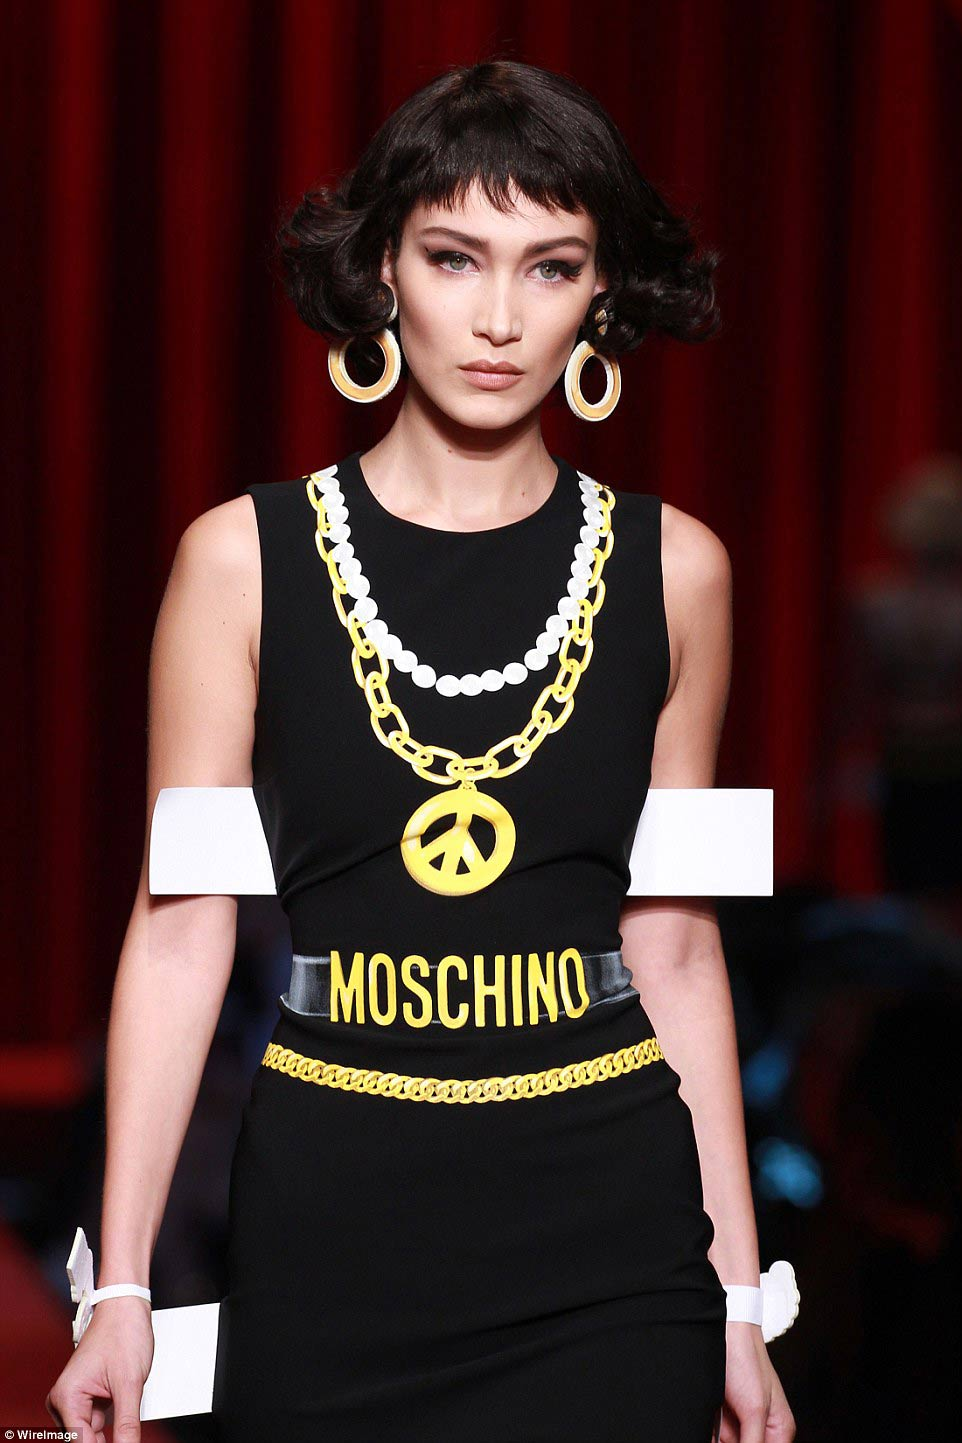 moschino lai gay sung so voi mot vay nhu do choi giay - 4